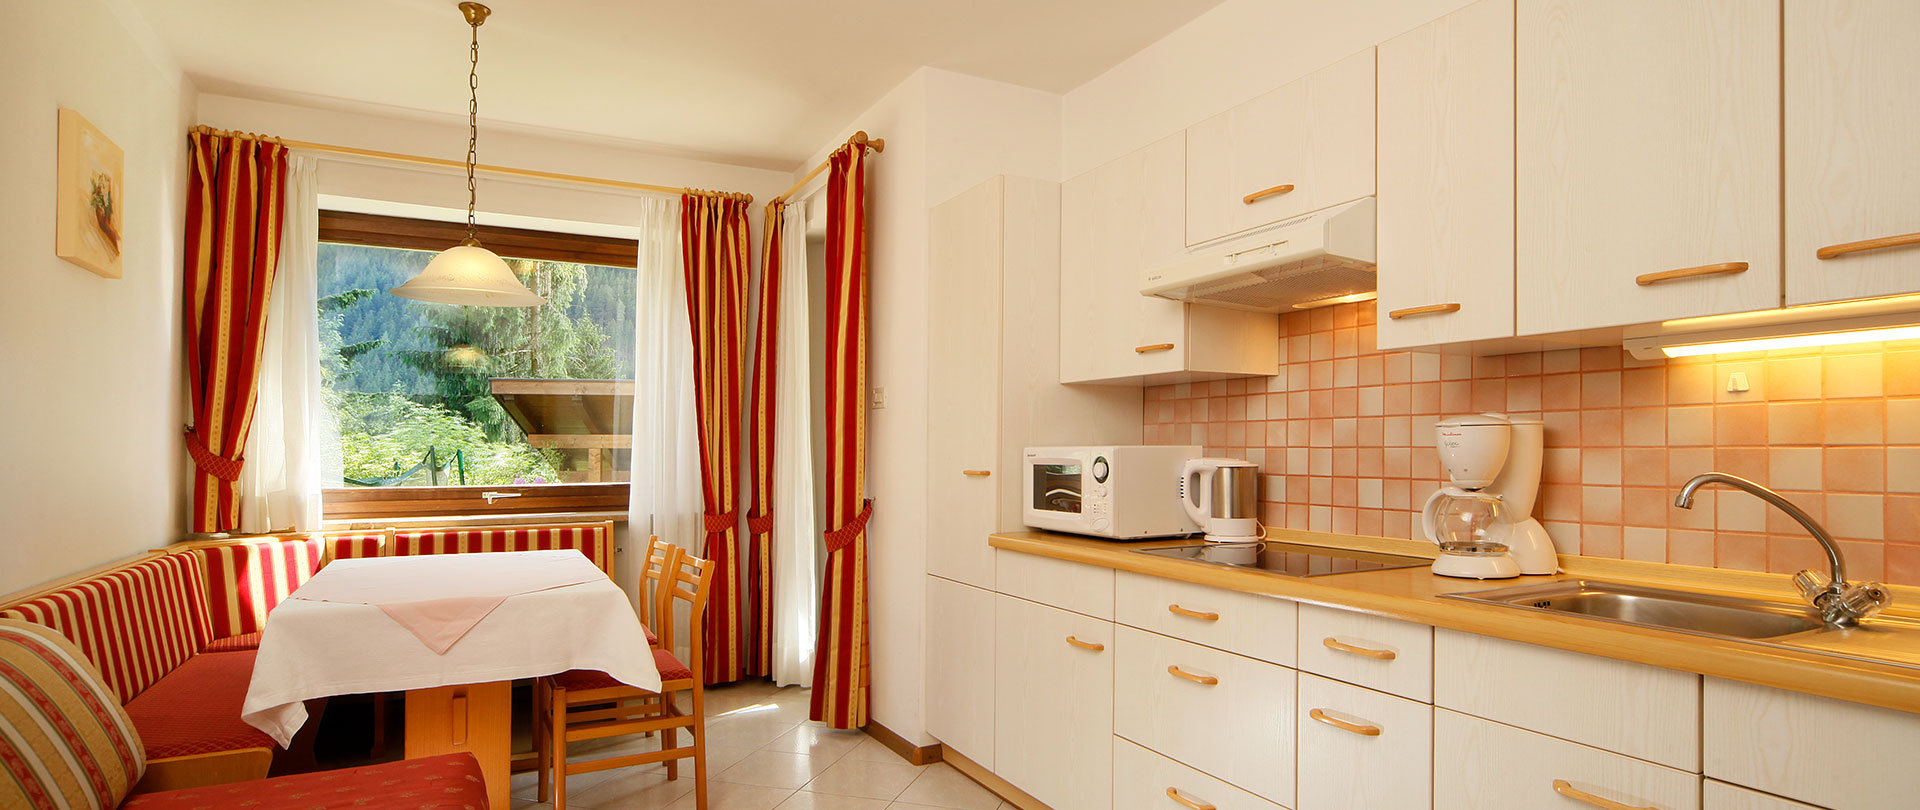 The Rosengarten holiday apartment